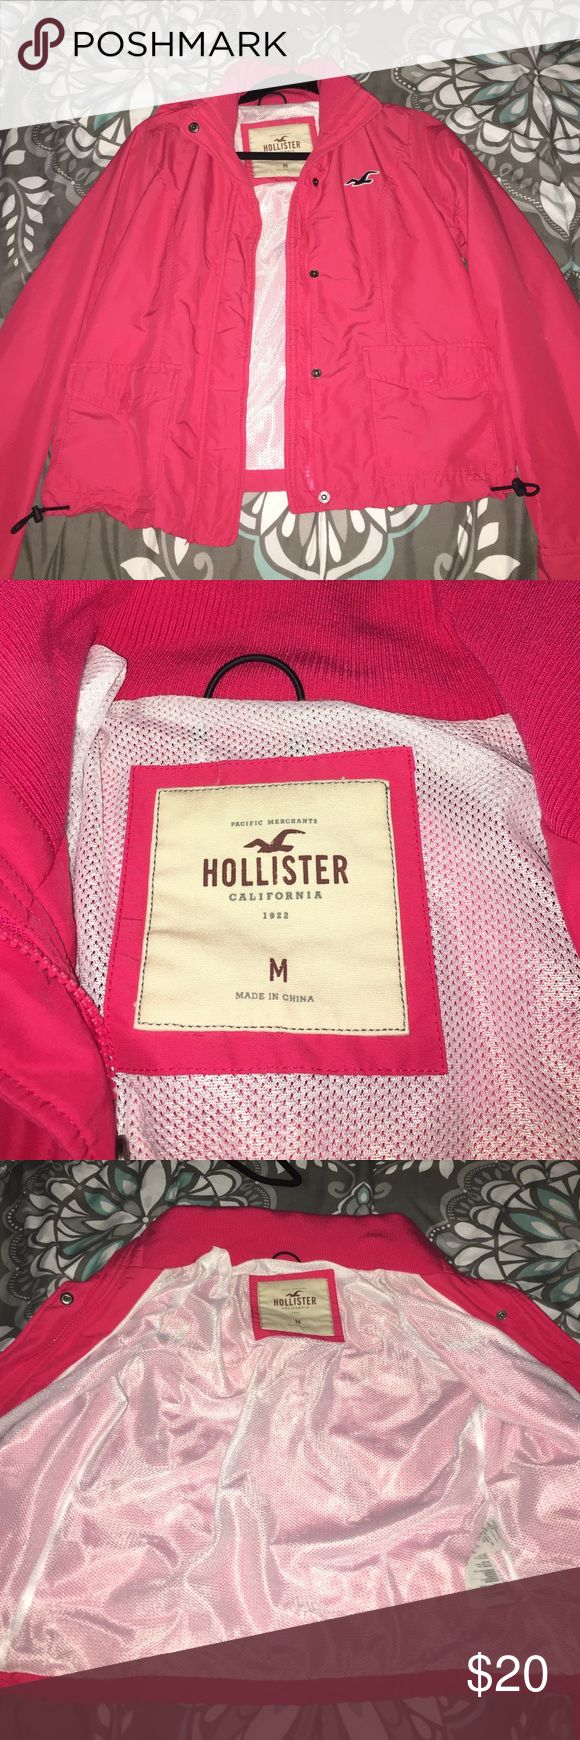 HOLLISTER RAIN JACKET CHEAP HOLLISTER RAIN JACKET, IN GREAT CONDITION. THE SIZE IS M BUT FITS AS A SMALL Hollister Jackets & Coats